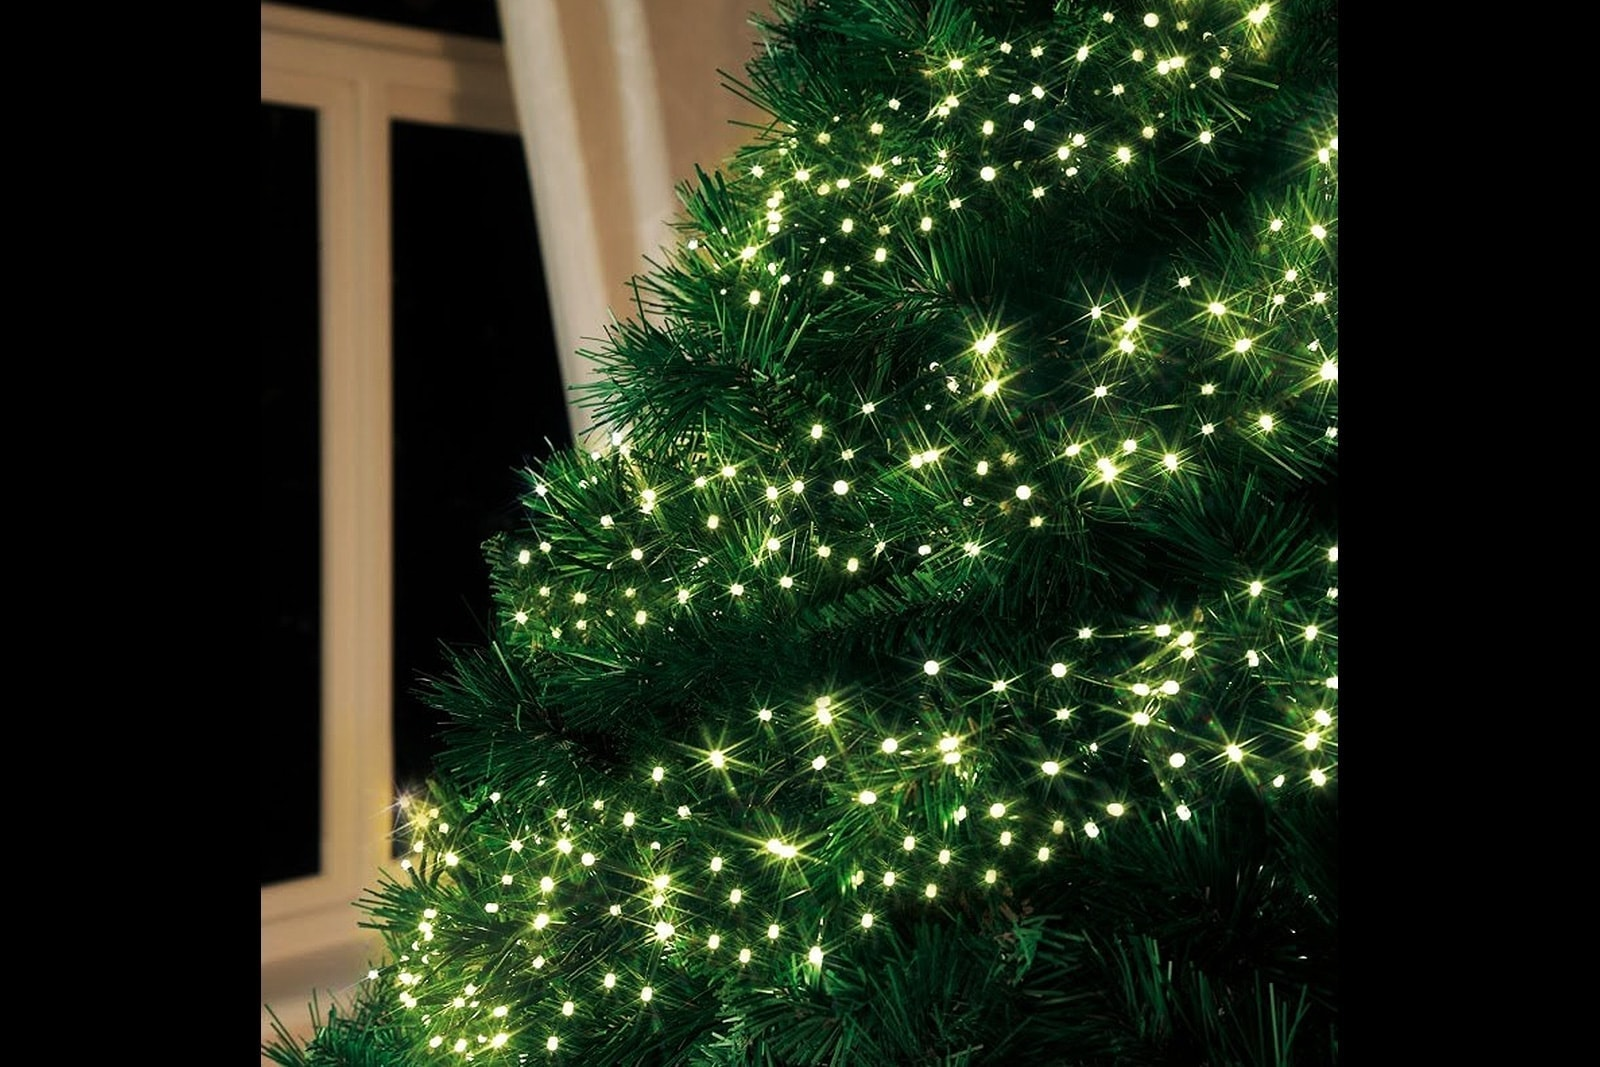 Clusterverlichting kerstboom • Transparant snoer • 1120 LED lampjes